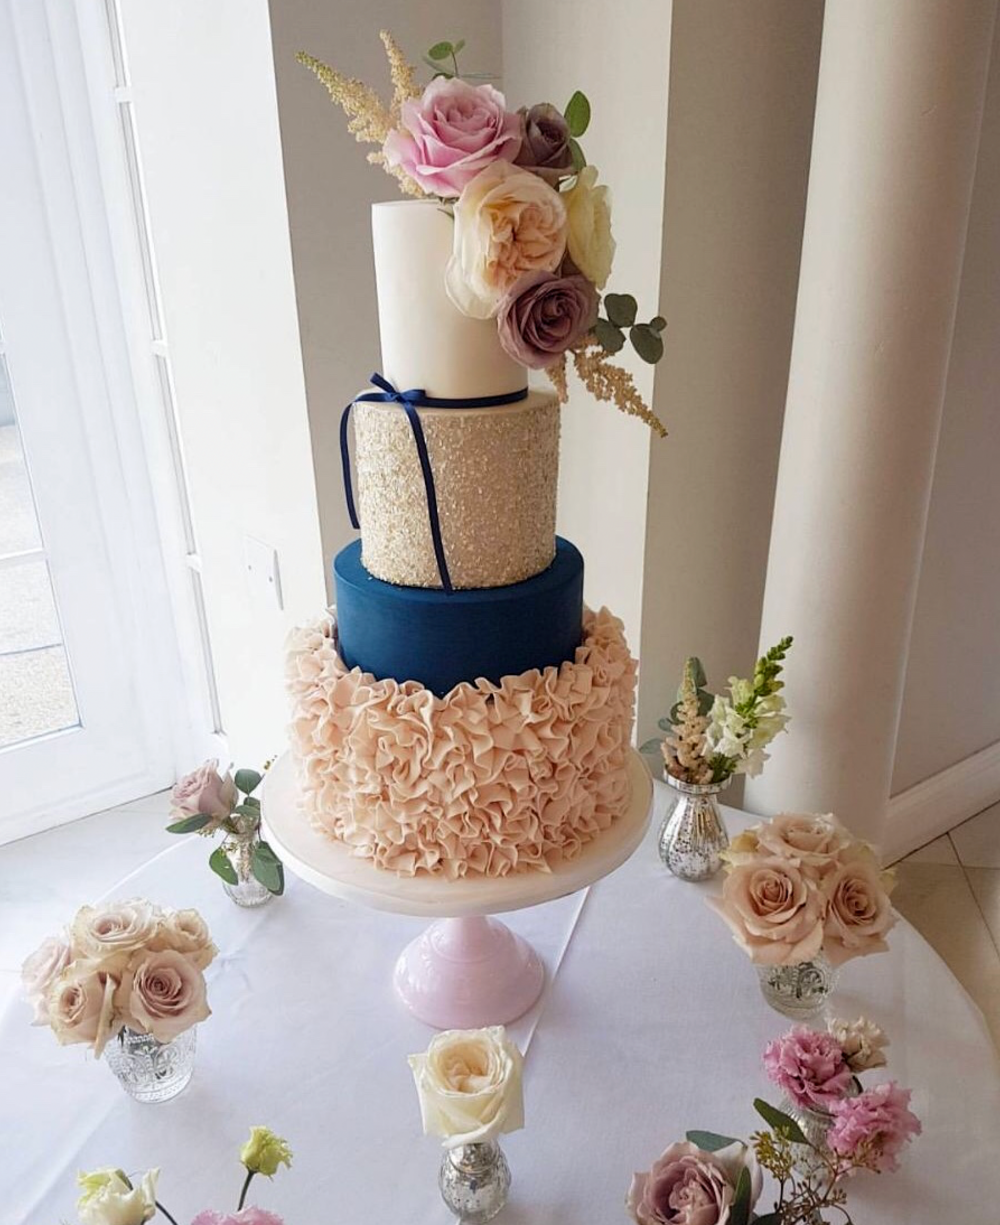 DOTTY ROSE WEDDING CAKE DESIGN NAVY AND BLUSH 4 TIER RUFFLED.png